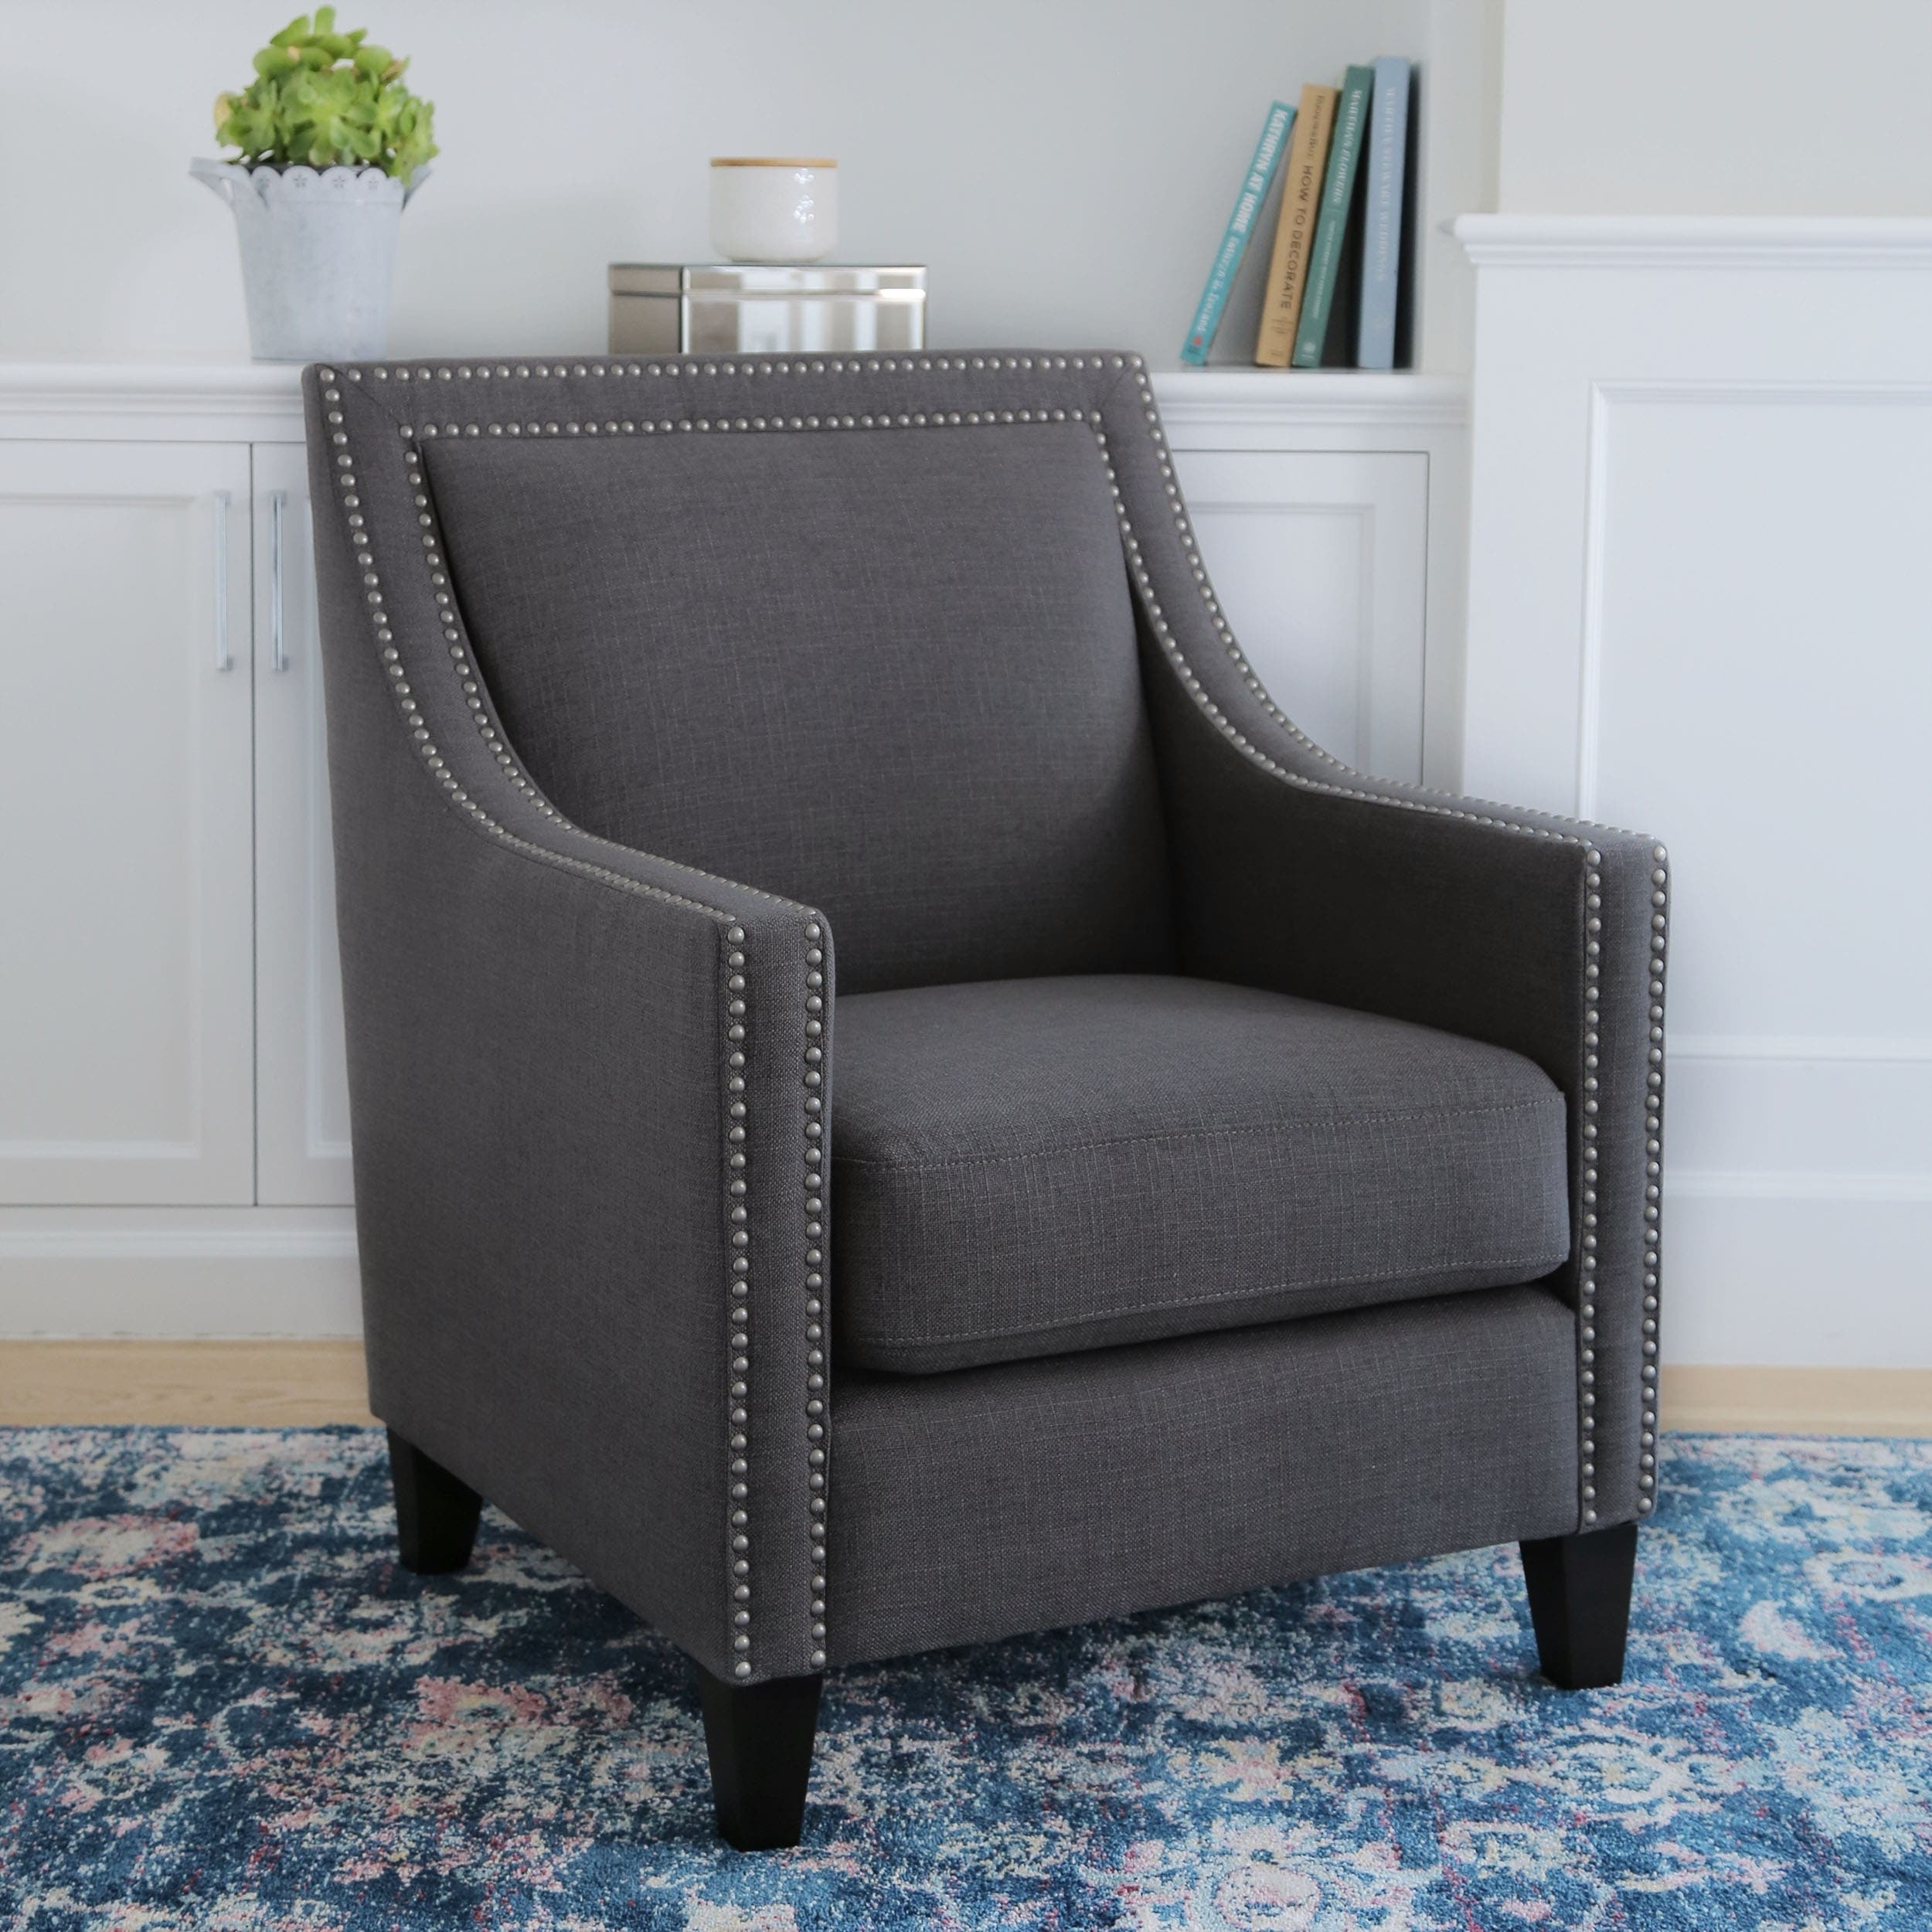 Great Deals On Furniture Online: Buy Living Room Chairs Online At Overstock